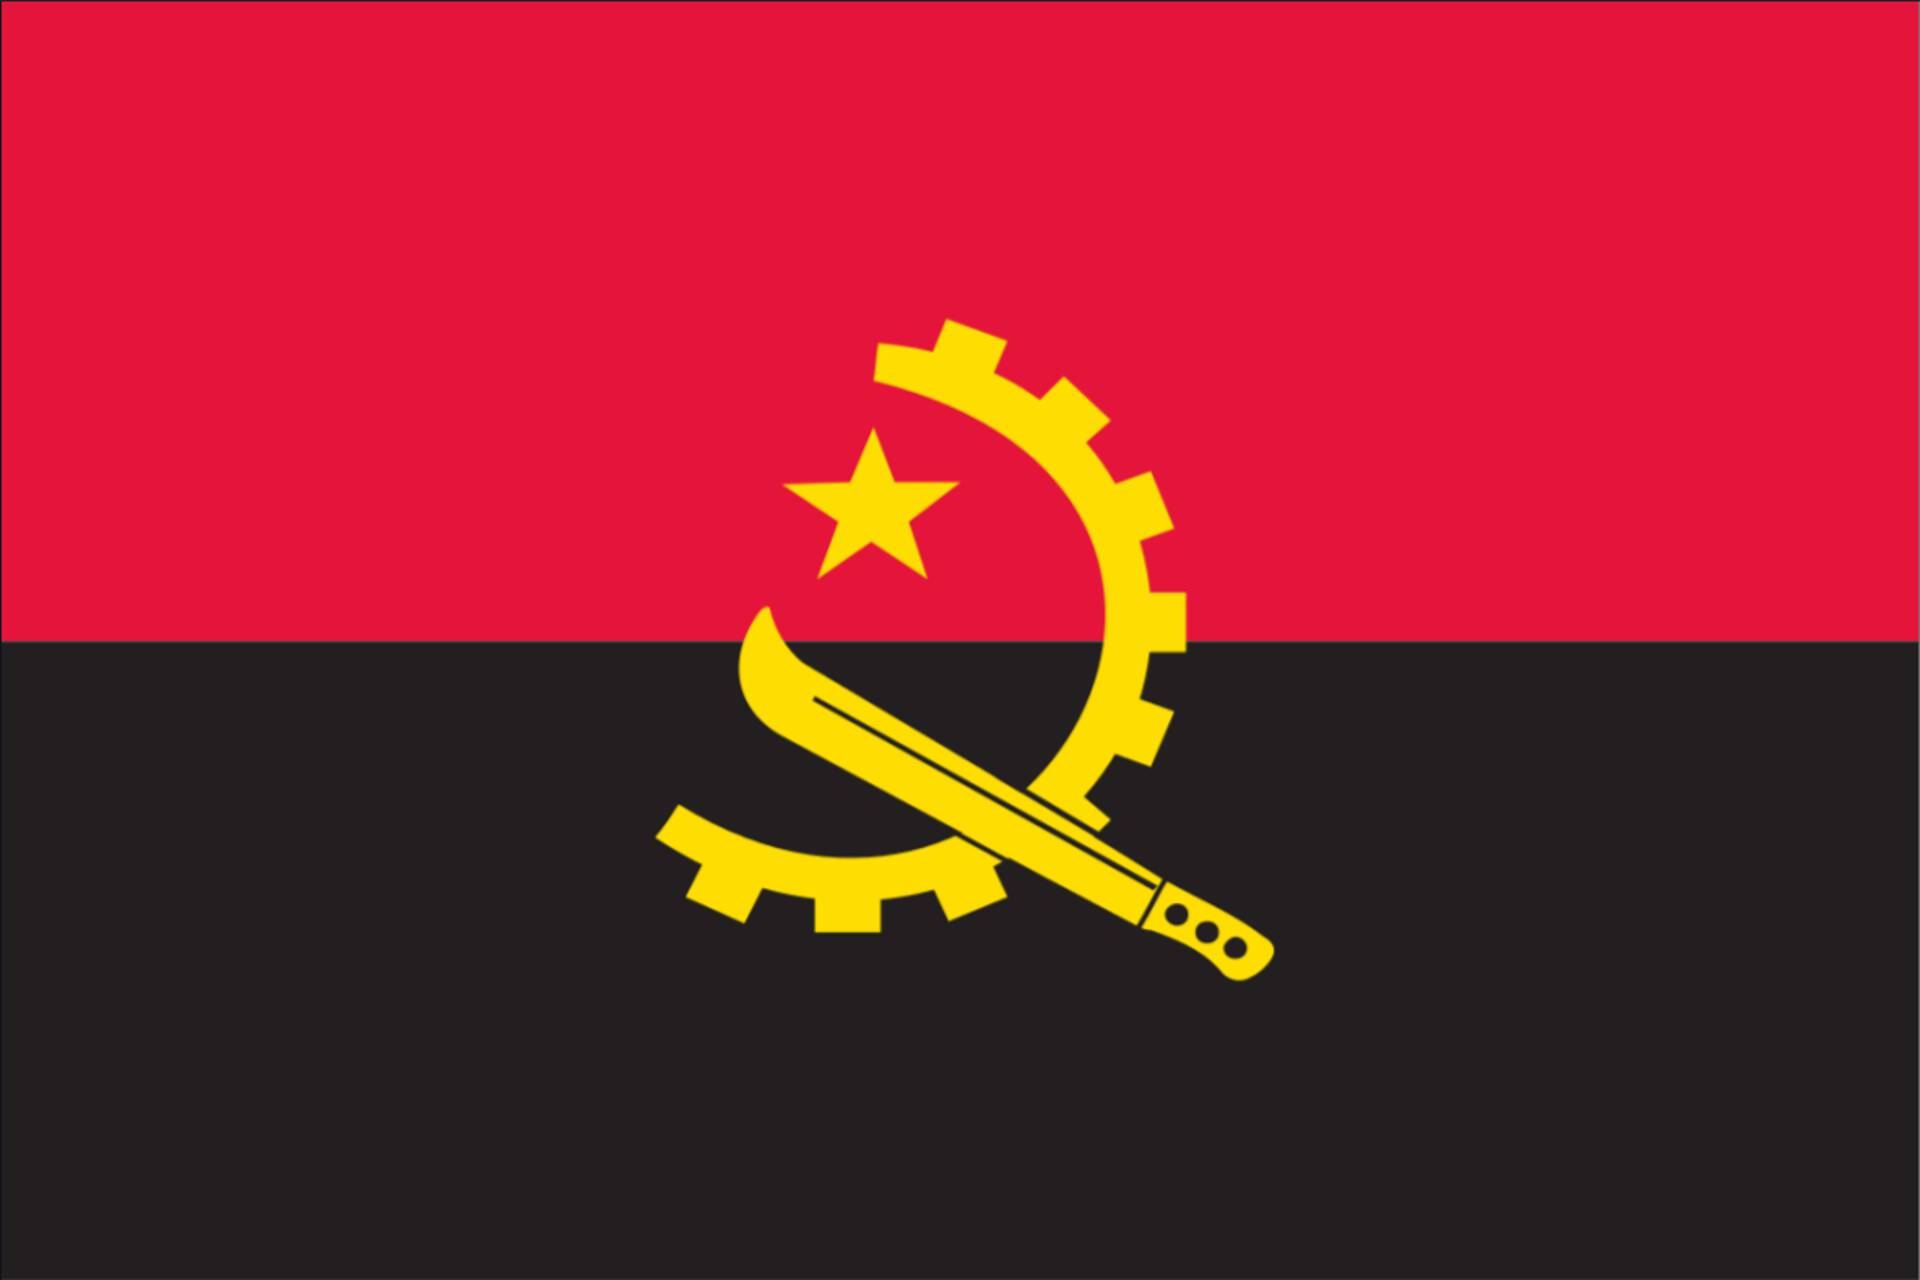 Flagge Angola 160 g/m² Querformat